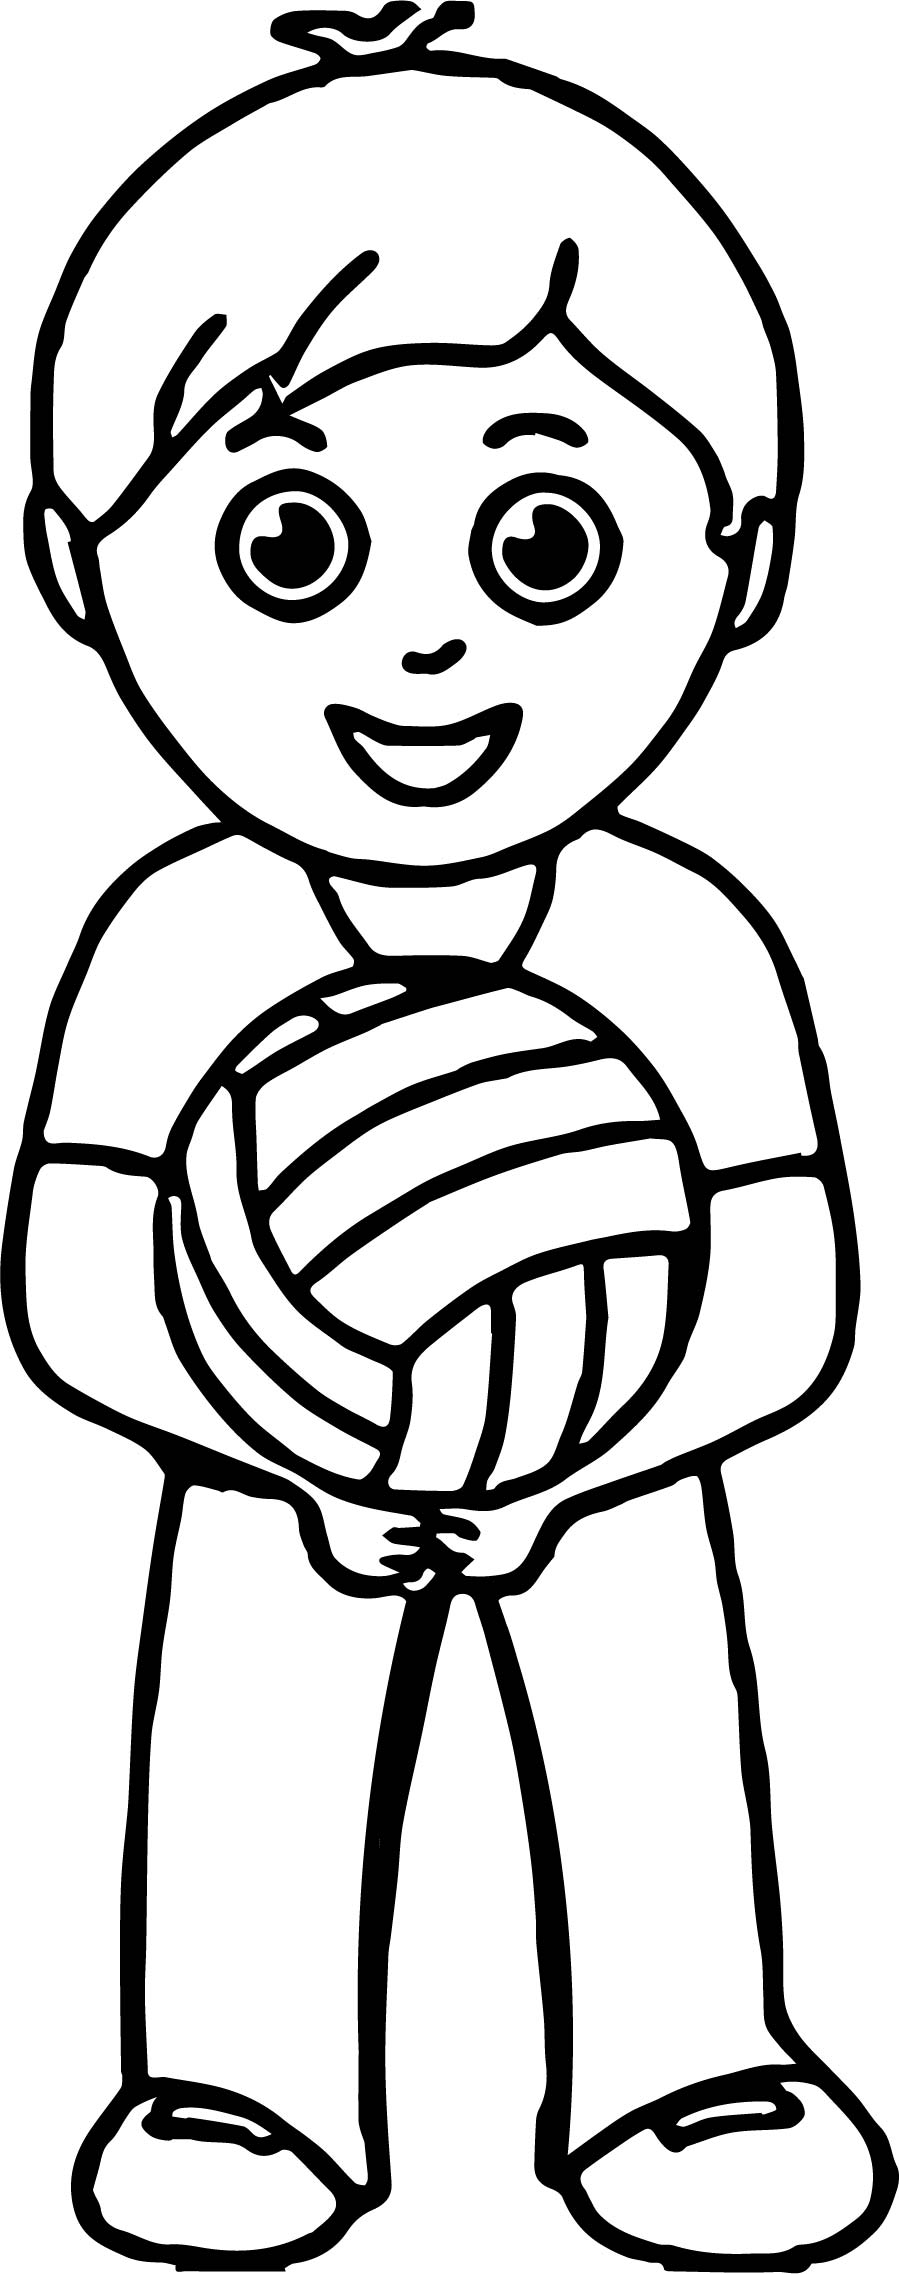 899x2274 Boy Playing Volleyball Coloring Pages Wecoloringpage